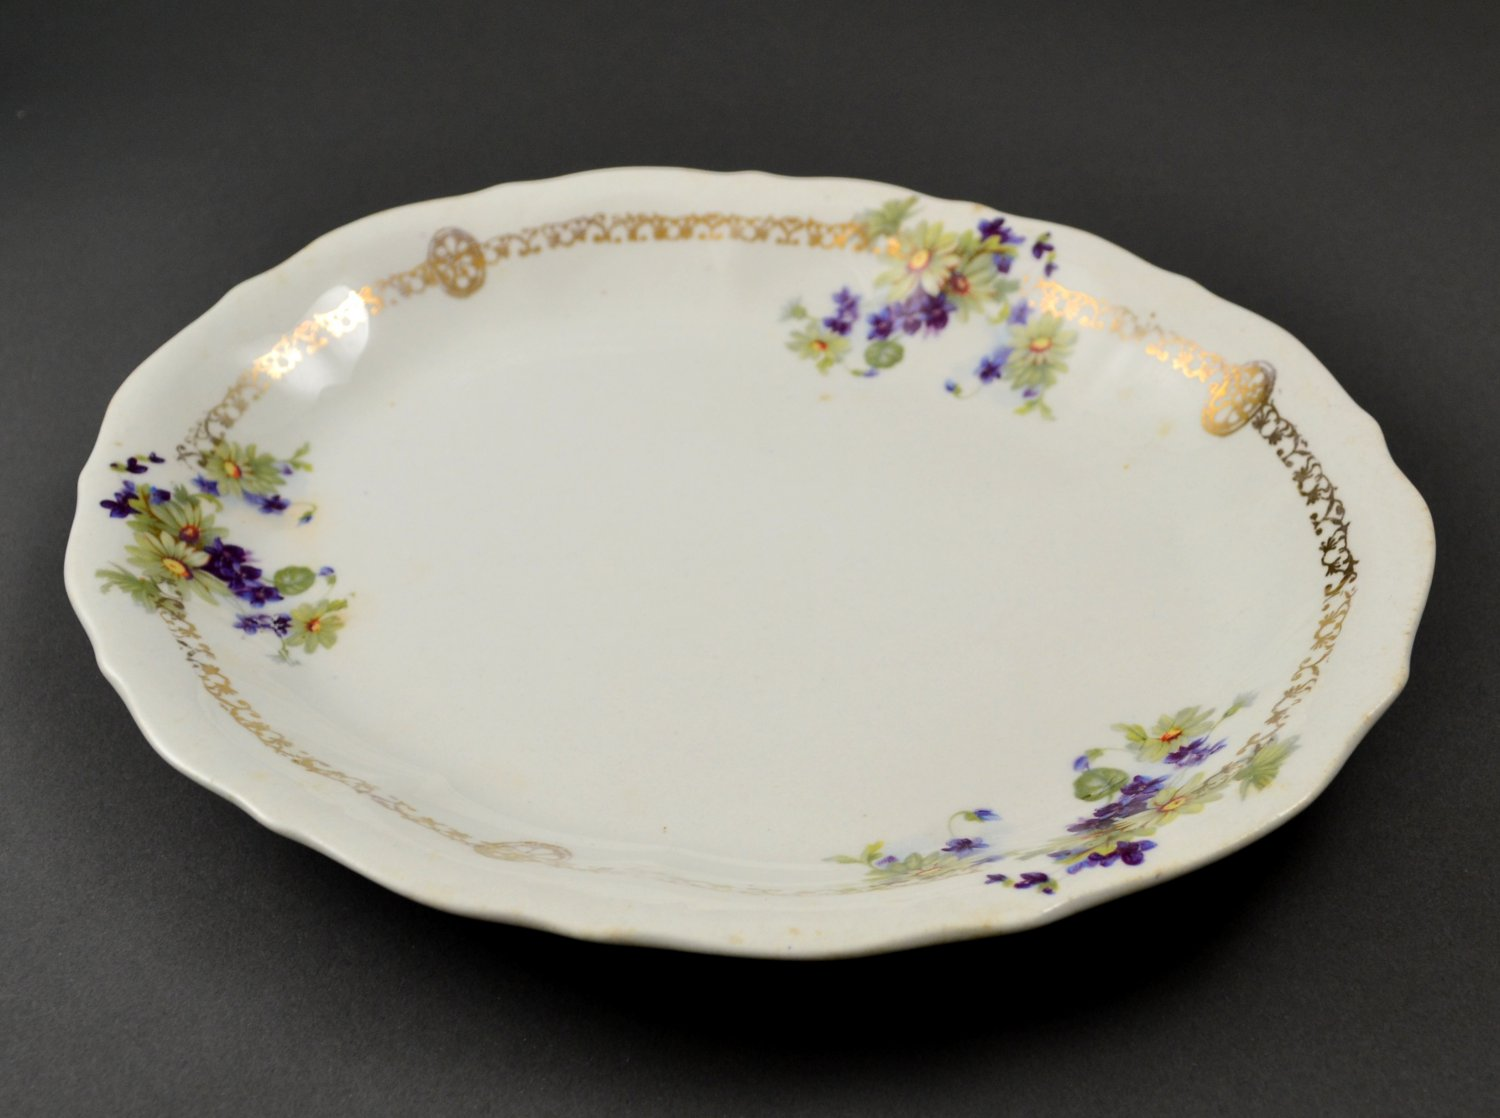 Vintage Ohio China Company Imperial China White Floral Platter